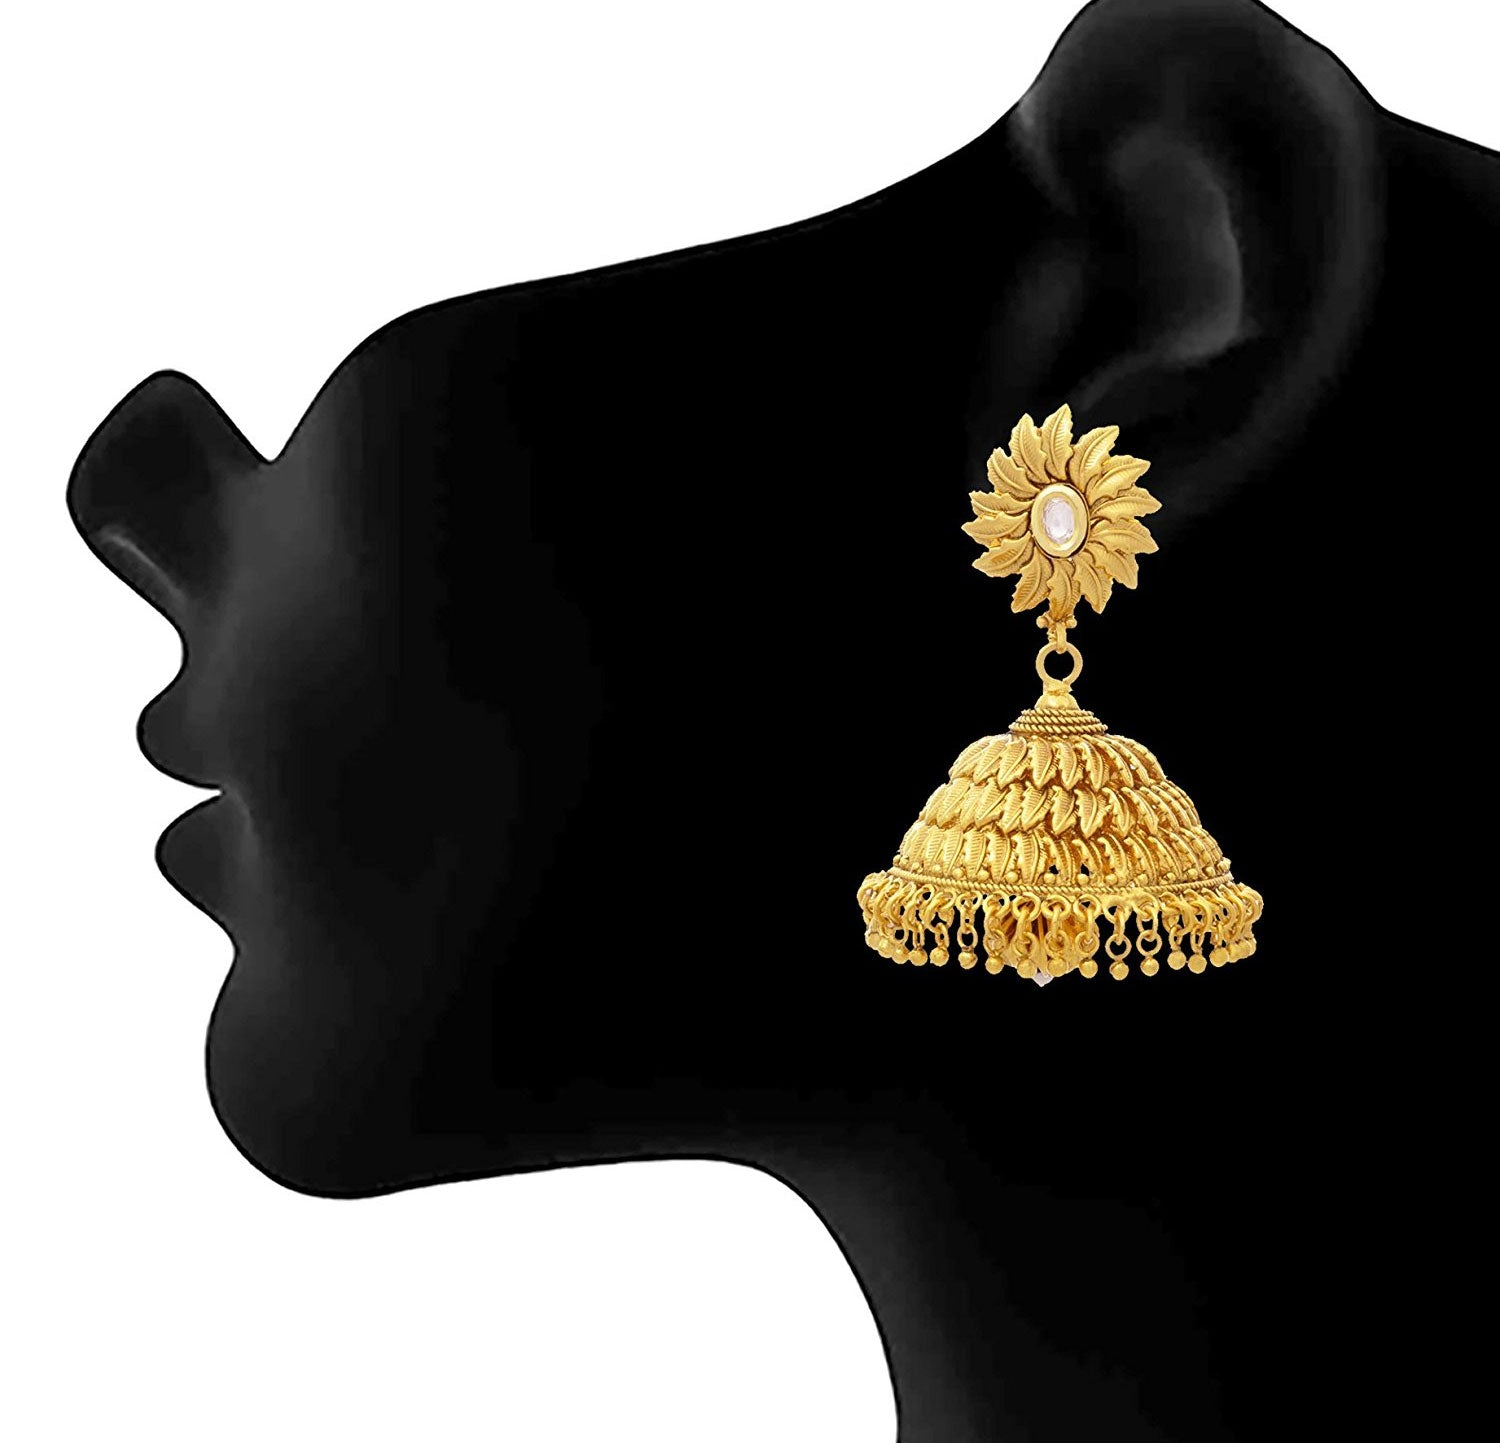 Jfl - Jewellery For Less Traditional Ethnic One Gram Gold Plated Kundan Leaf Jhumka Earrings For Women